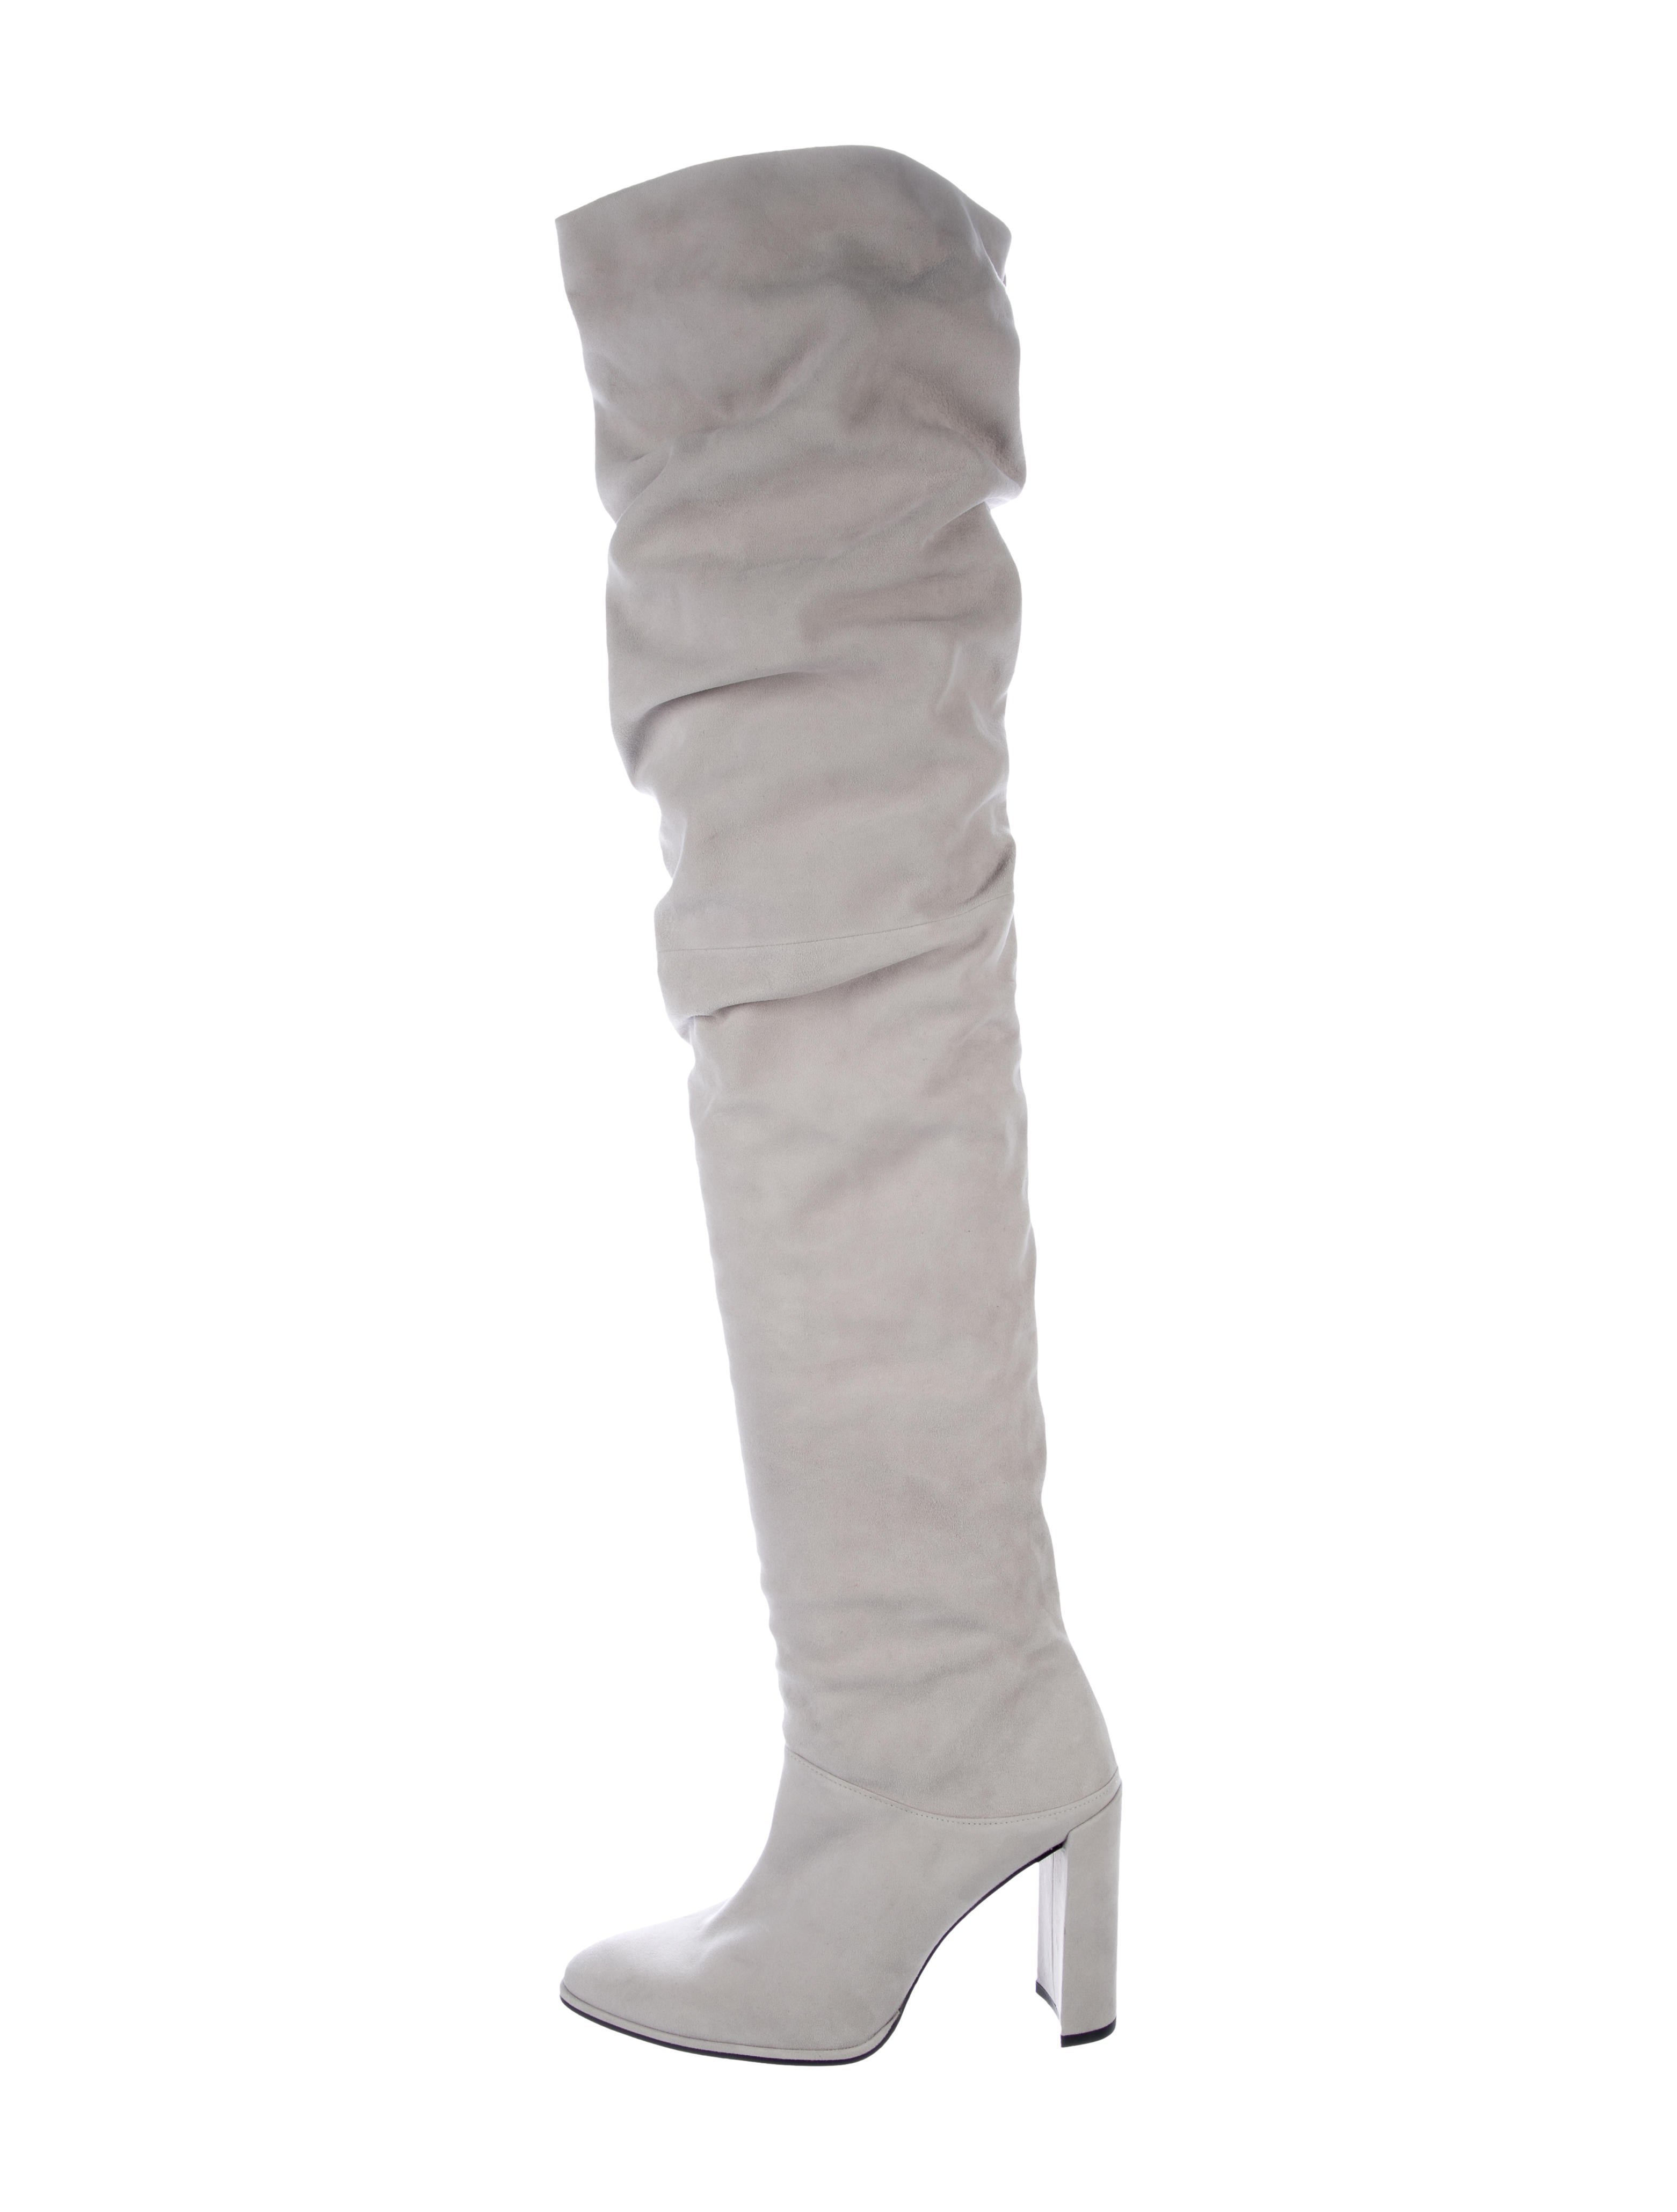 Stuart Weitzman 2017 Histyle Over-The-Knee Boots comfortable for sale low price fee shipping pre order online the cheapest BYeE46